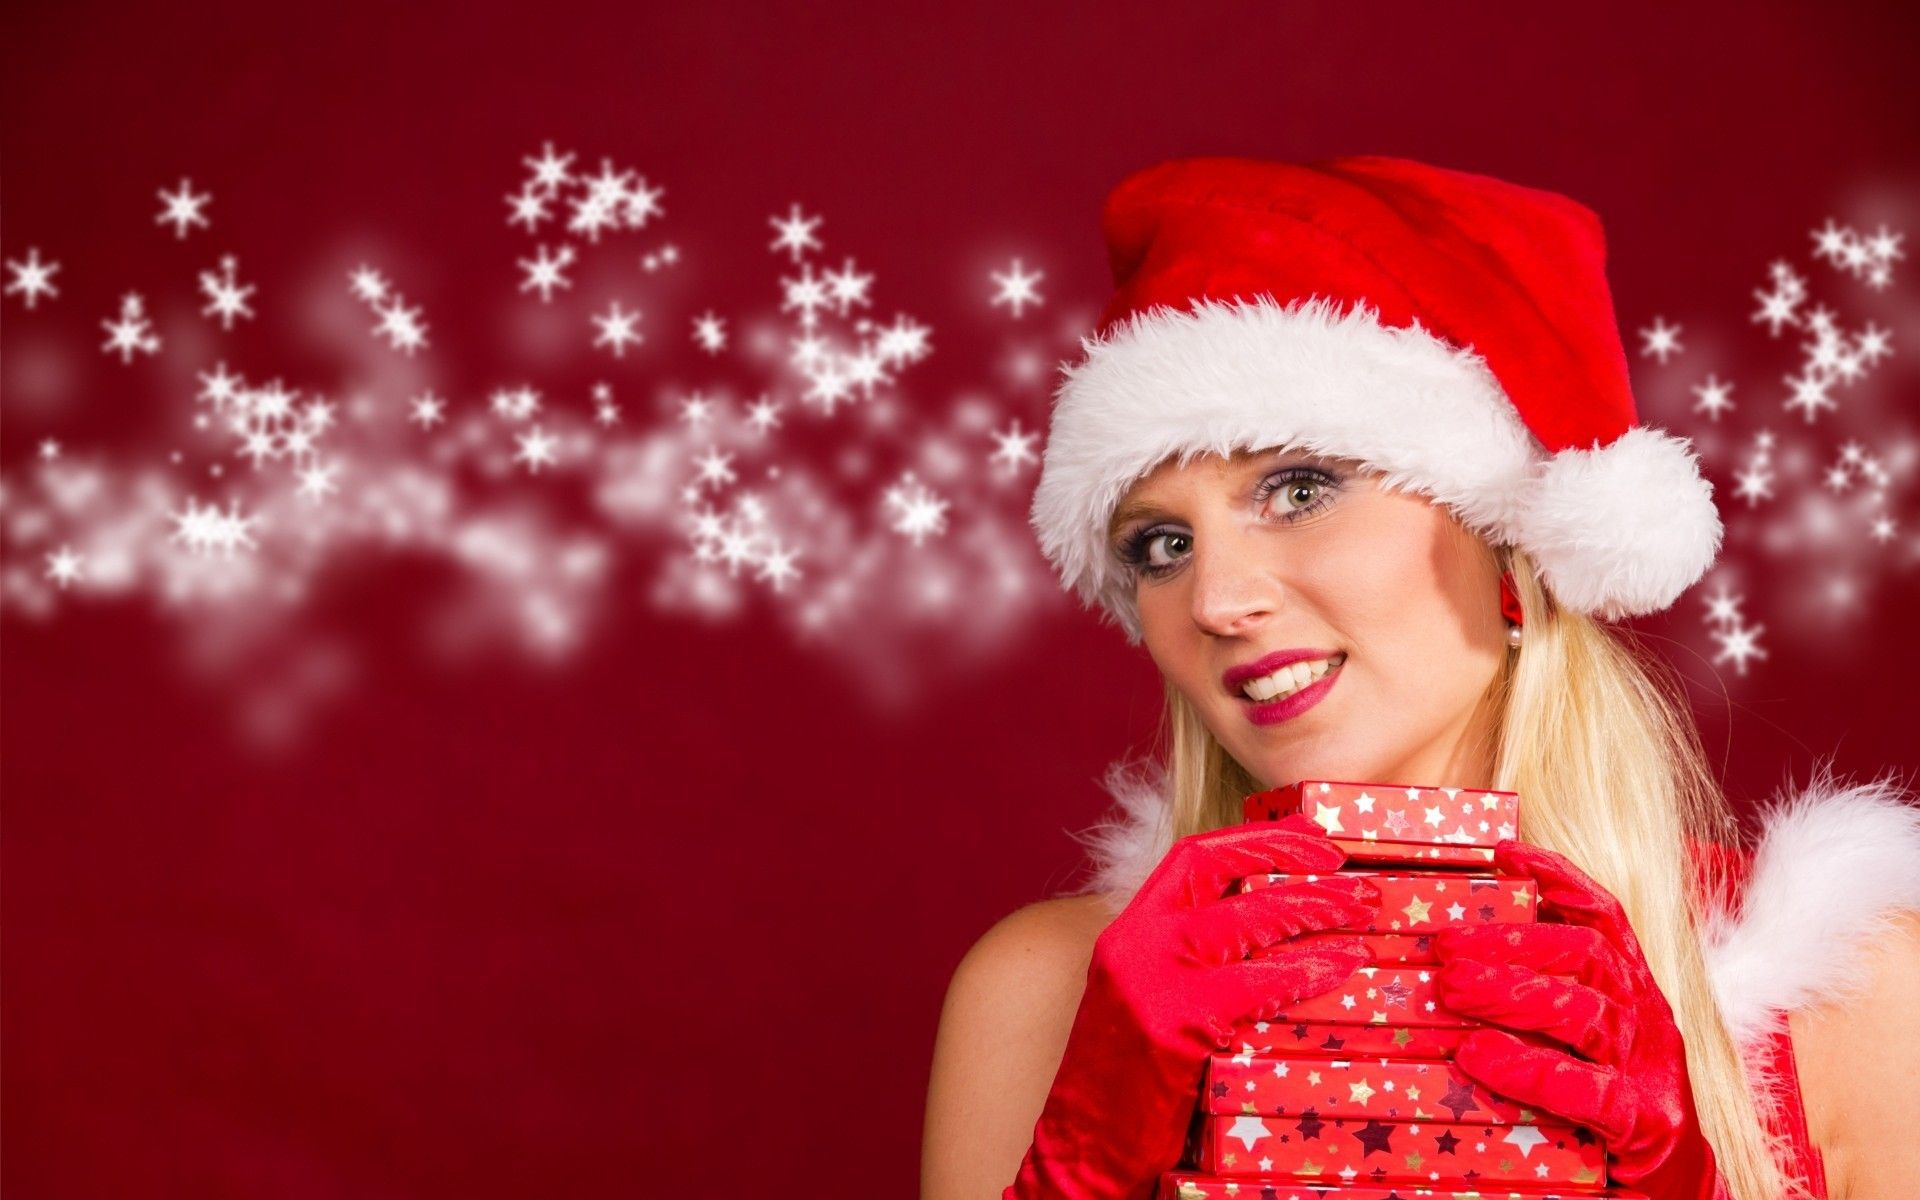 Cute Girl Christmas Gifts Hd Wallpapers Rozhdestvo